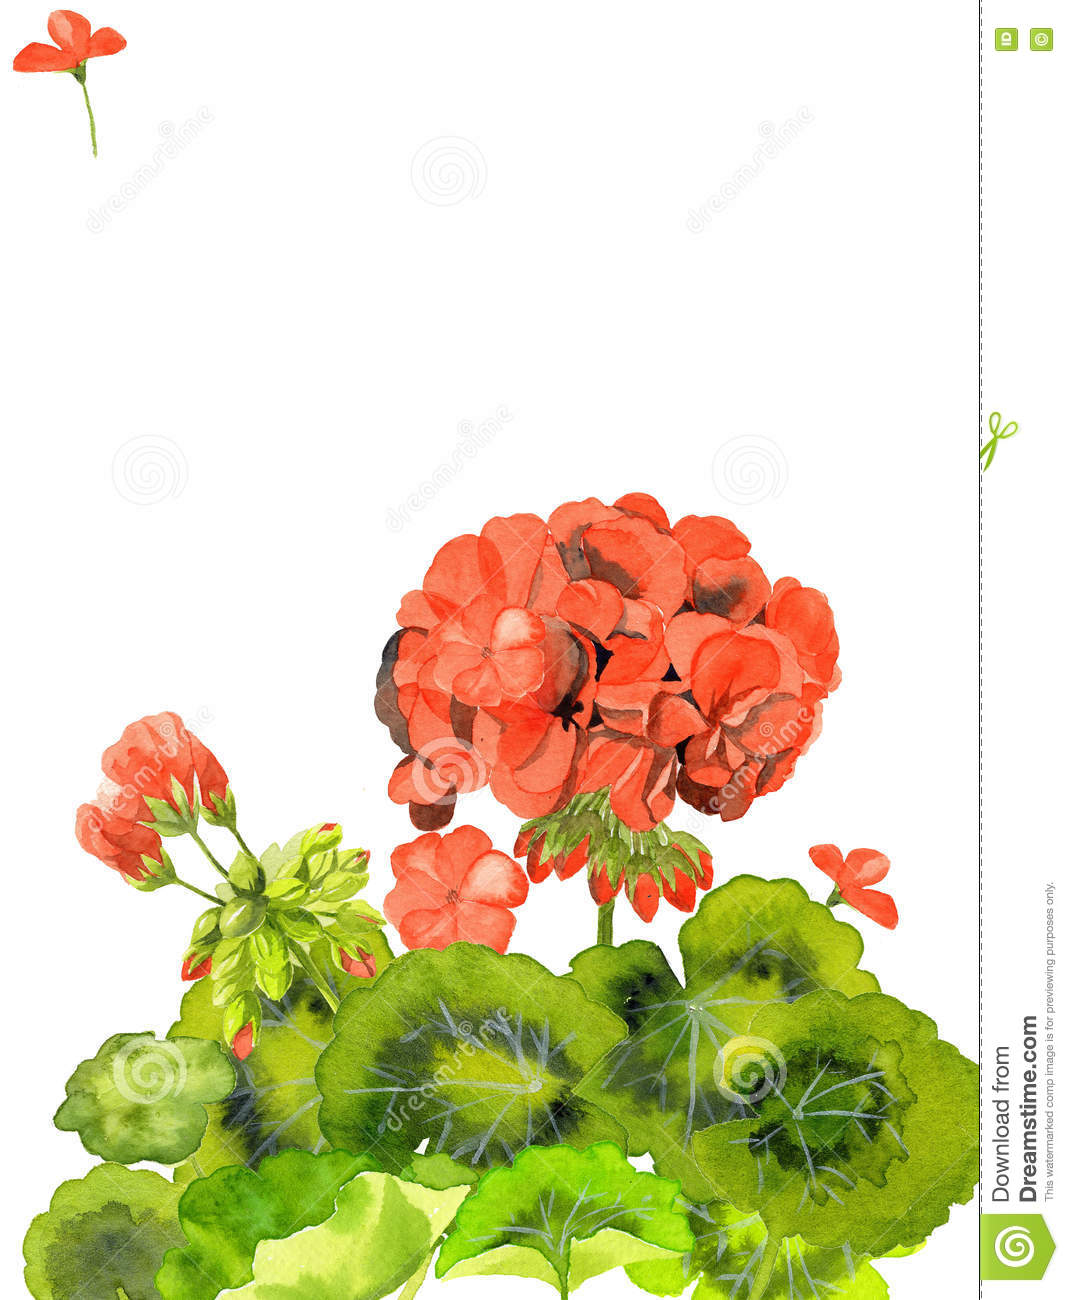 Watercolor Illustration Of Red Geranium Flowers Design Of Blank